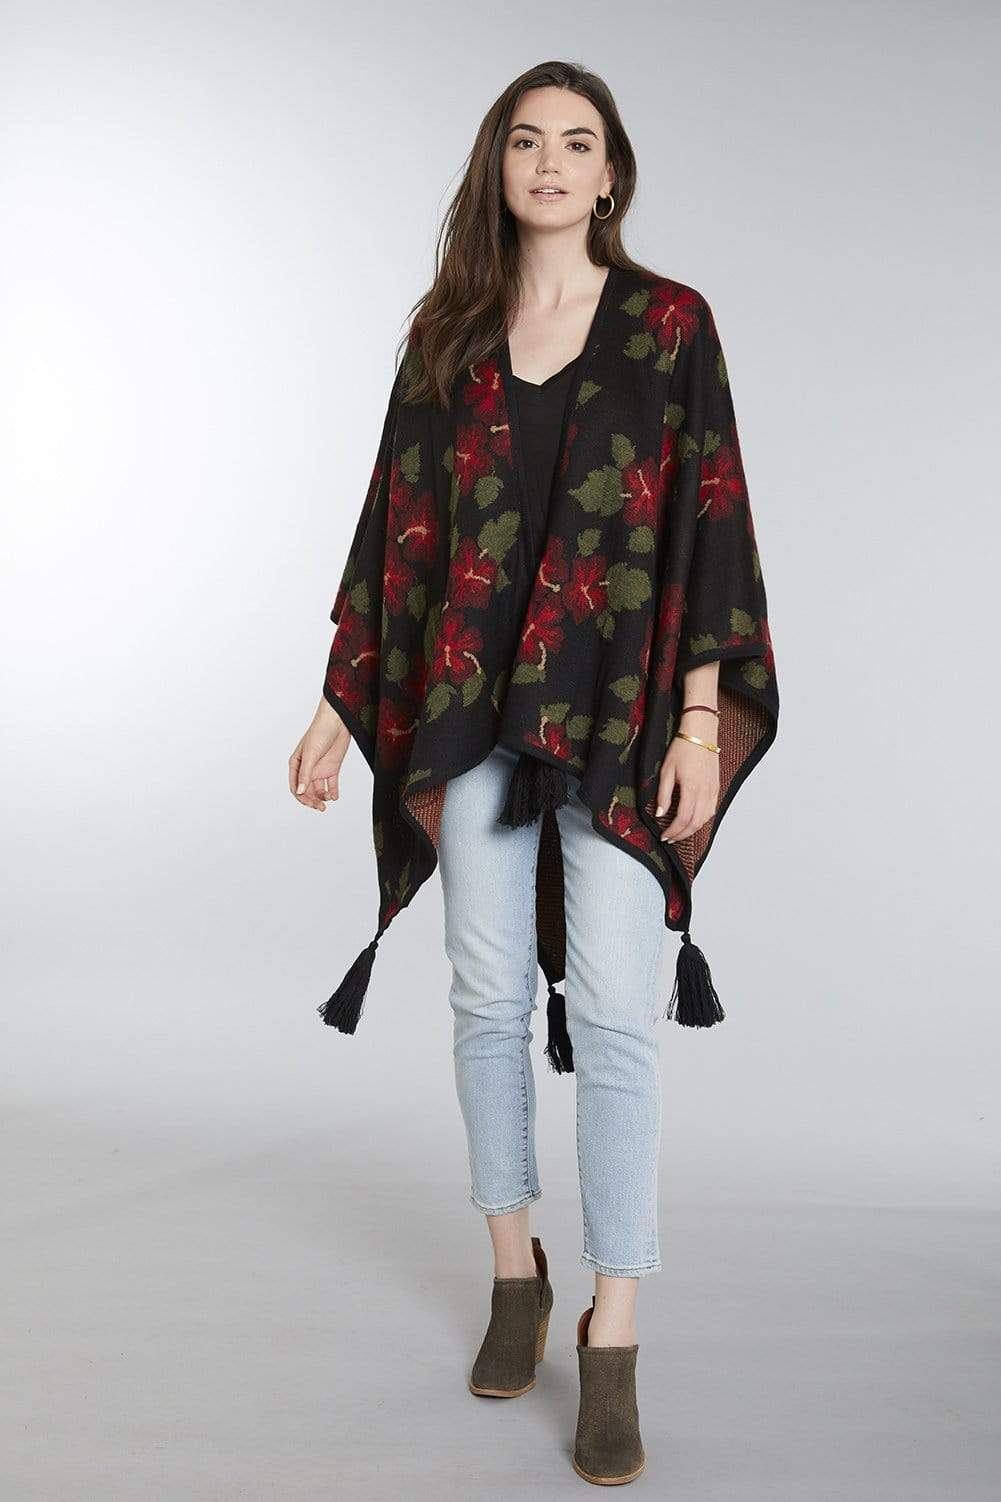 Invisible World Hibiscus Baby Alpaca Poncho - Women's Ruana Wrap